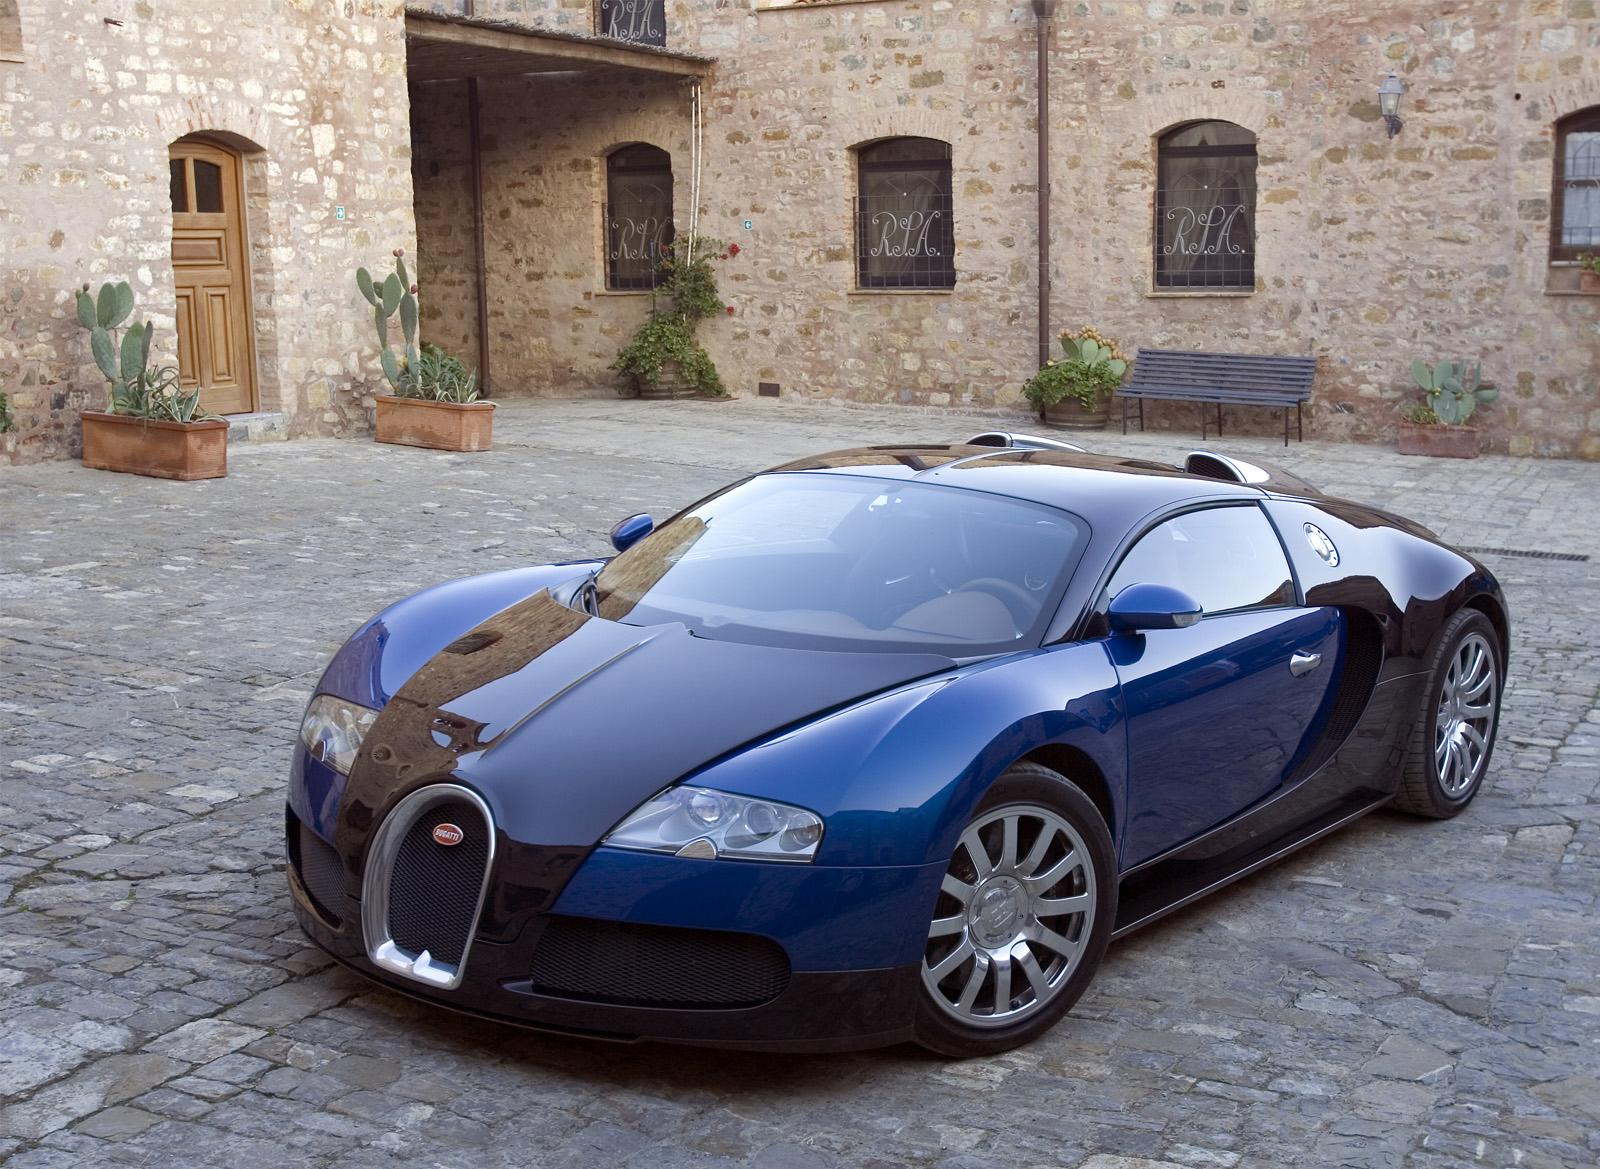 exotic car luxury brands  Short Comparison: 10 Exotic Car Makers - YouWheel.com - Your ...